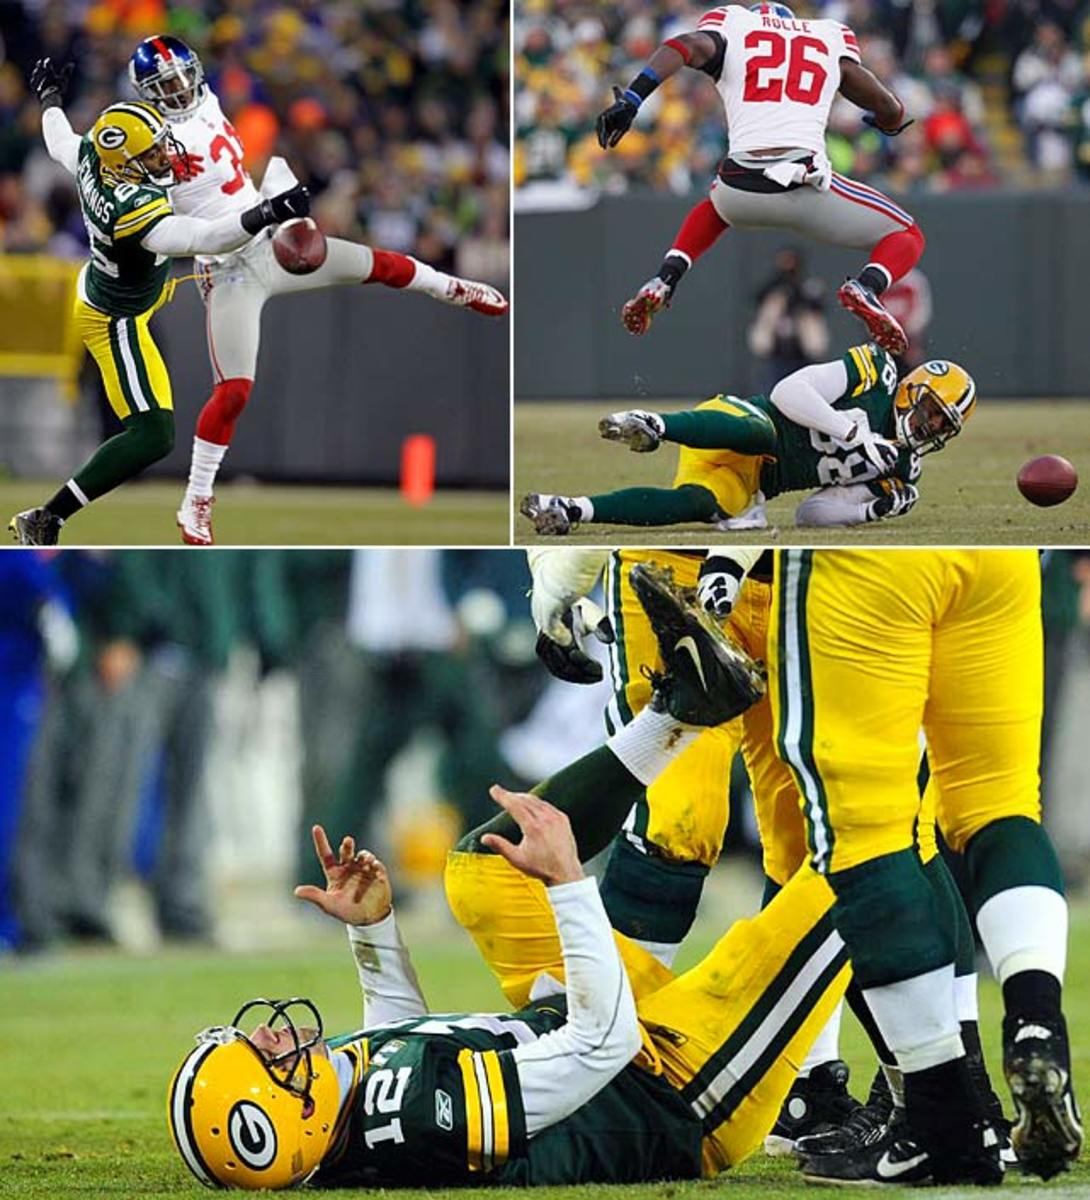 2011 Green Bay Packers (15-1)